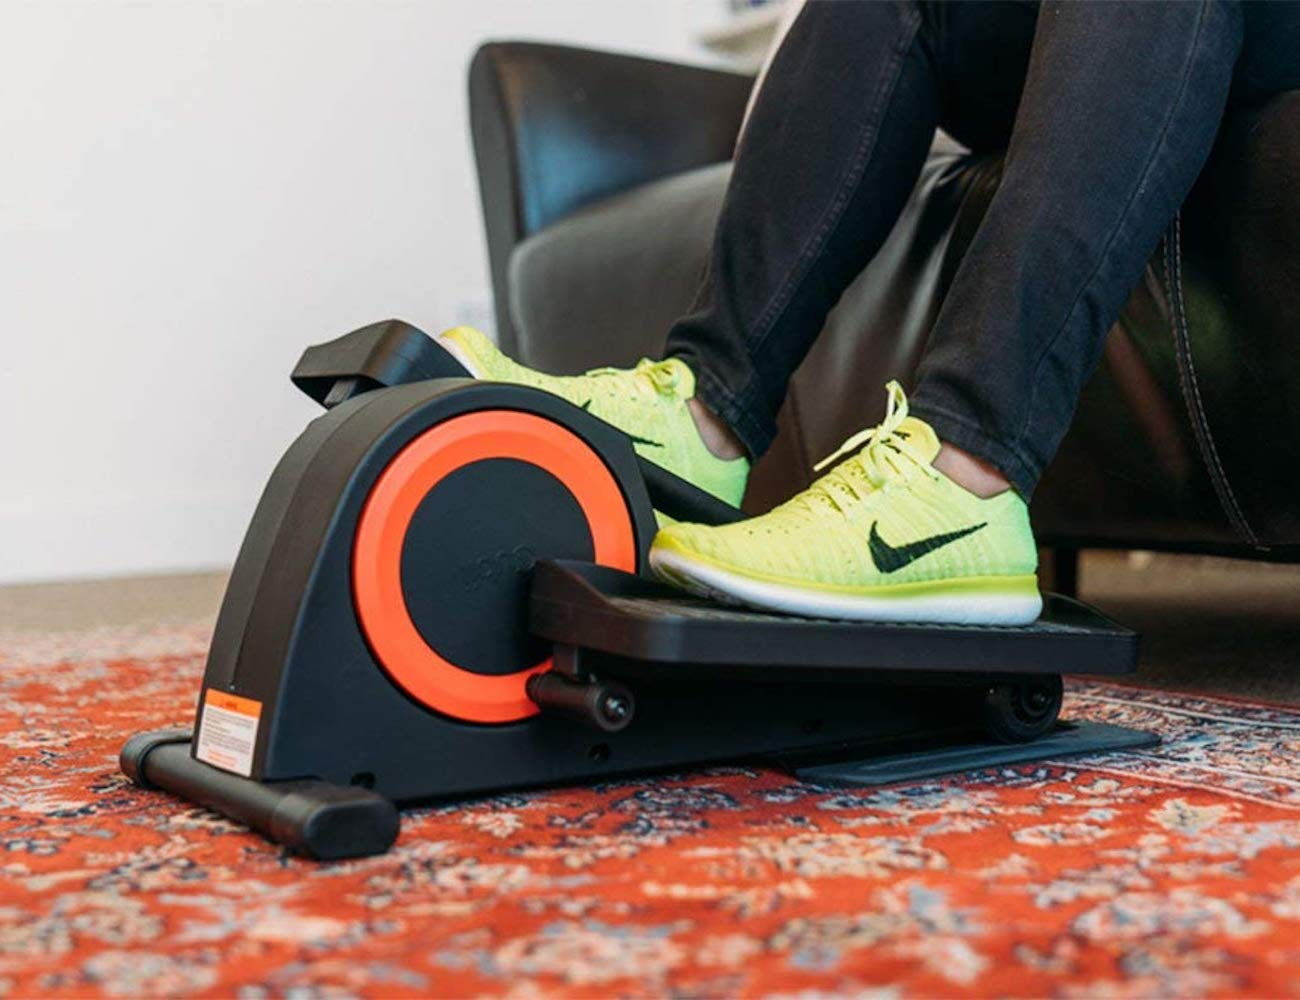 How an Under Desk Elliptical Trainer Can Boost Creativity in The Workplace